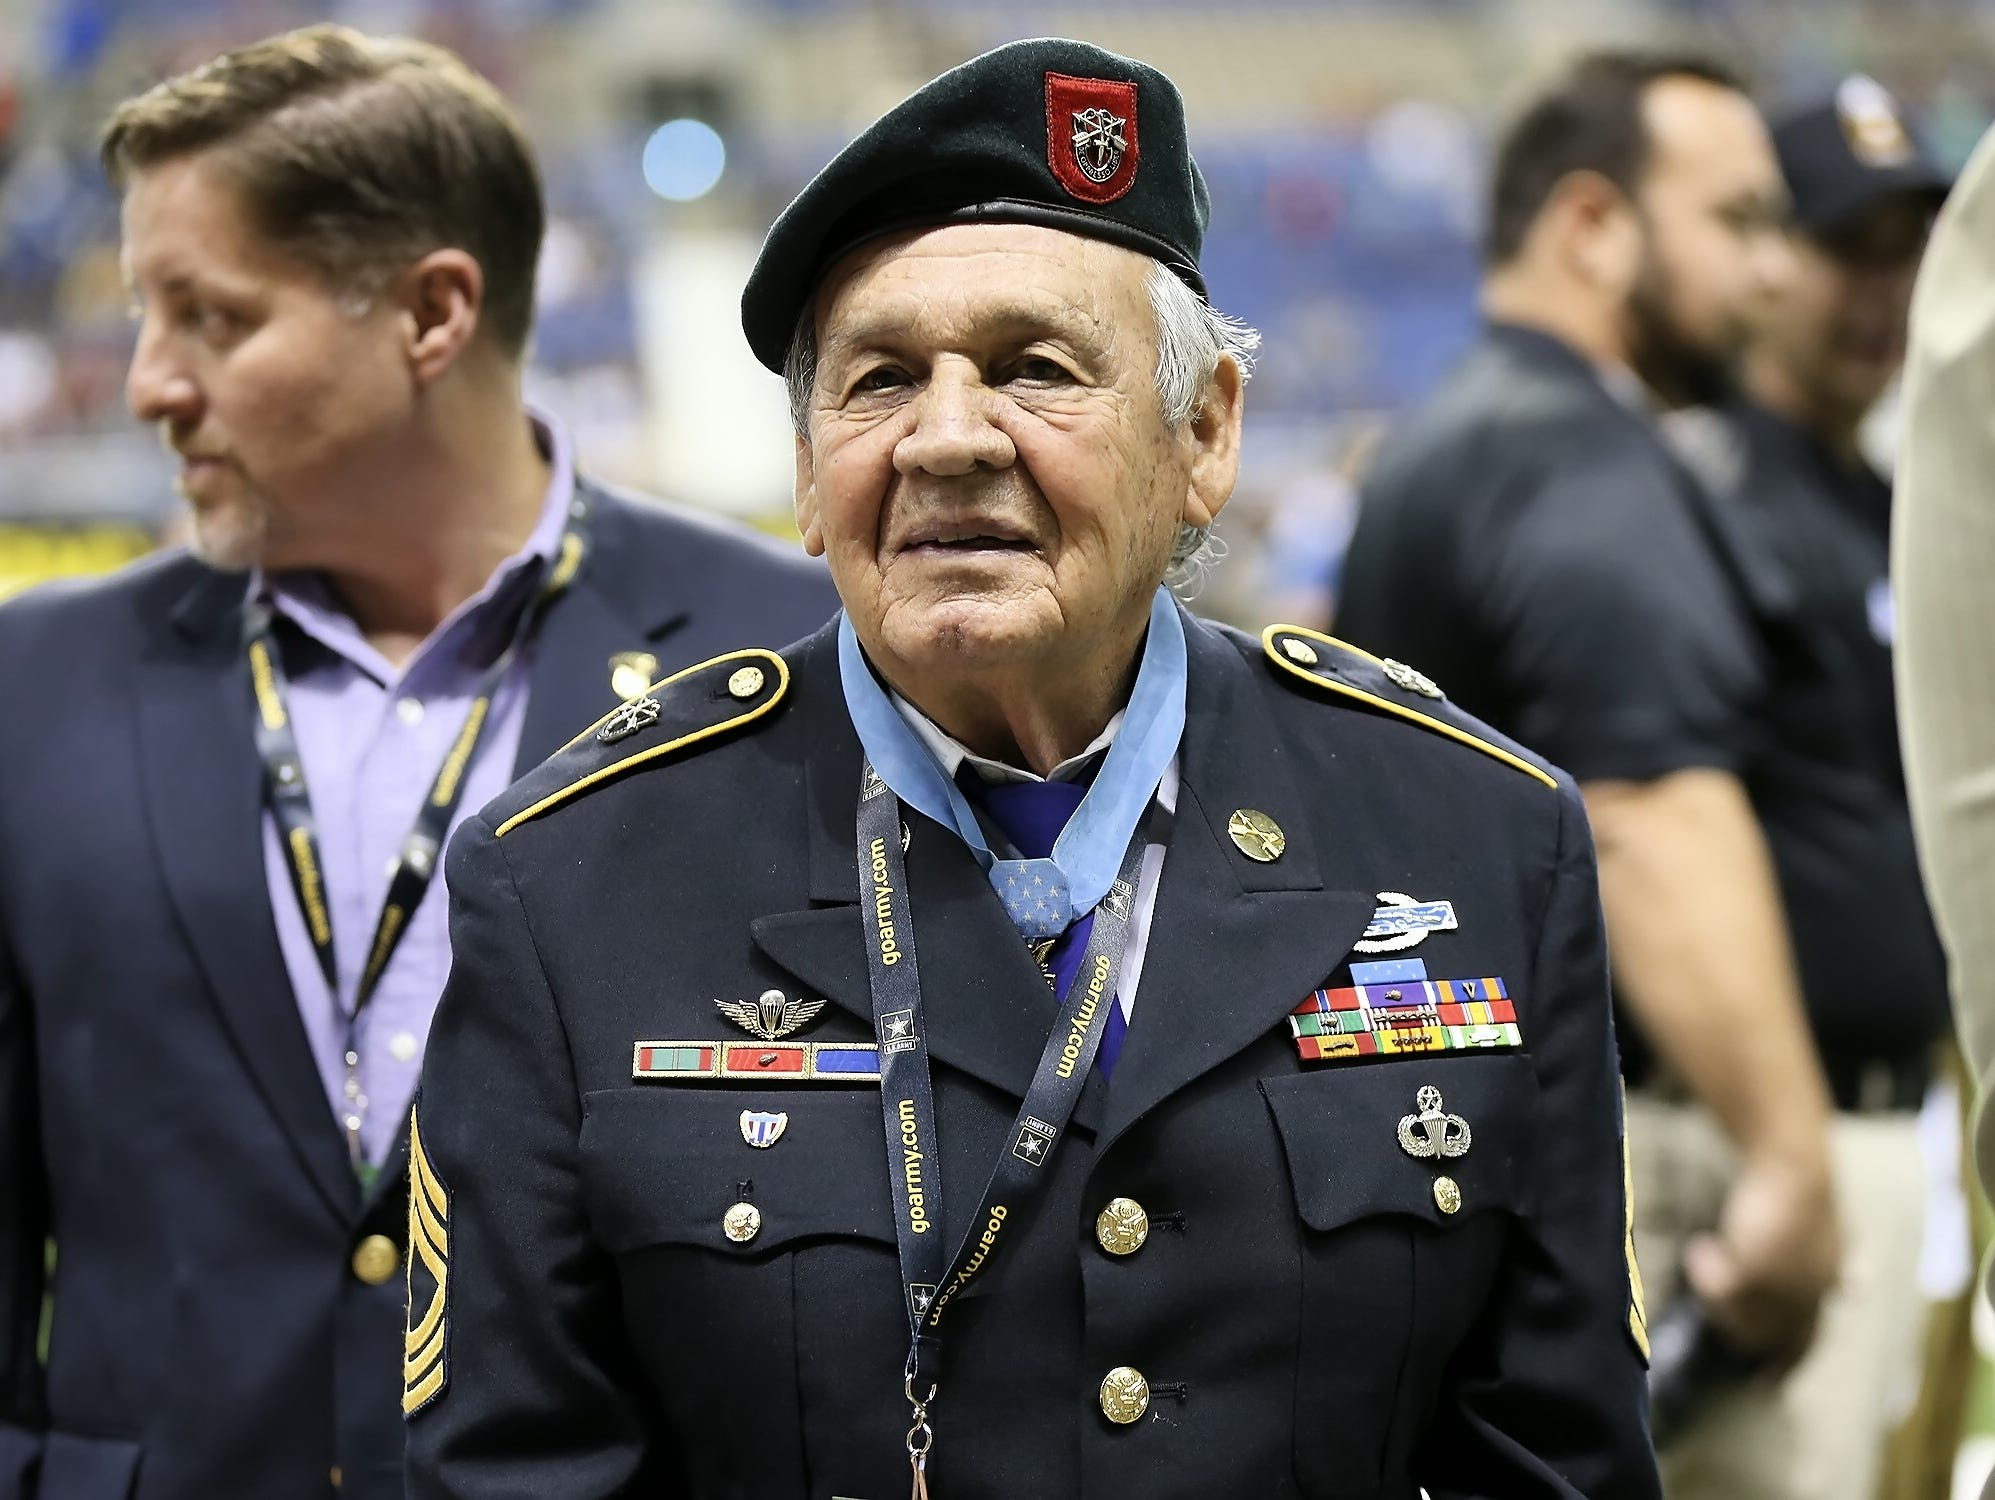 Jose Rodela, who has lived in San Antonio since retiring from the Army in 1975, received the Medal of Honor from President Obama last March at the White House.